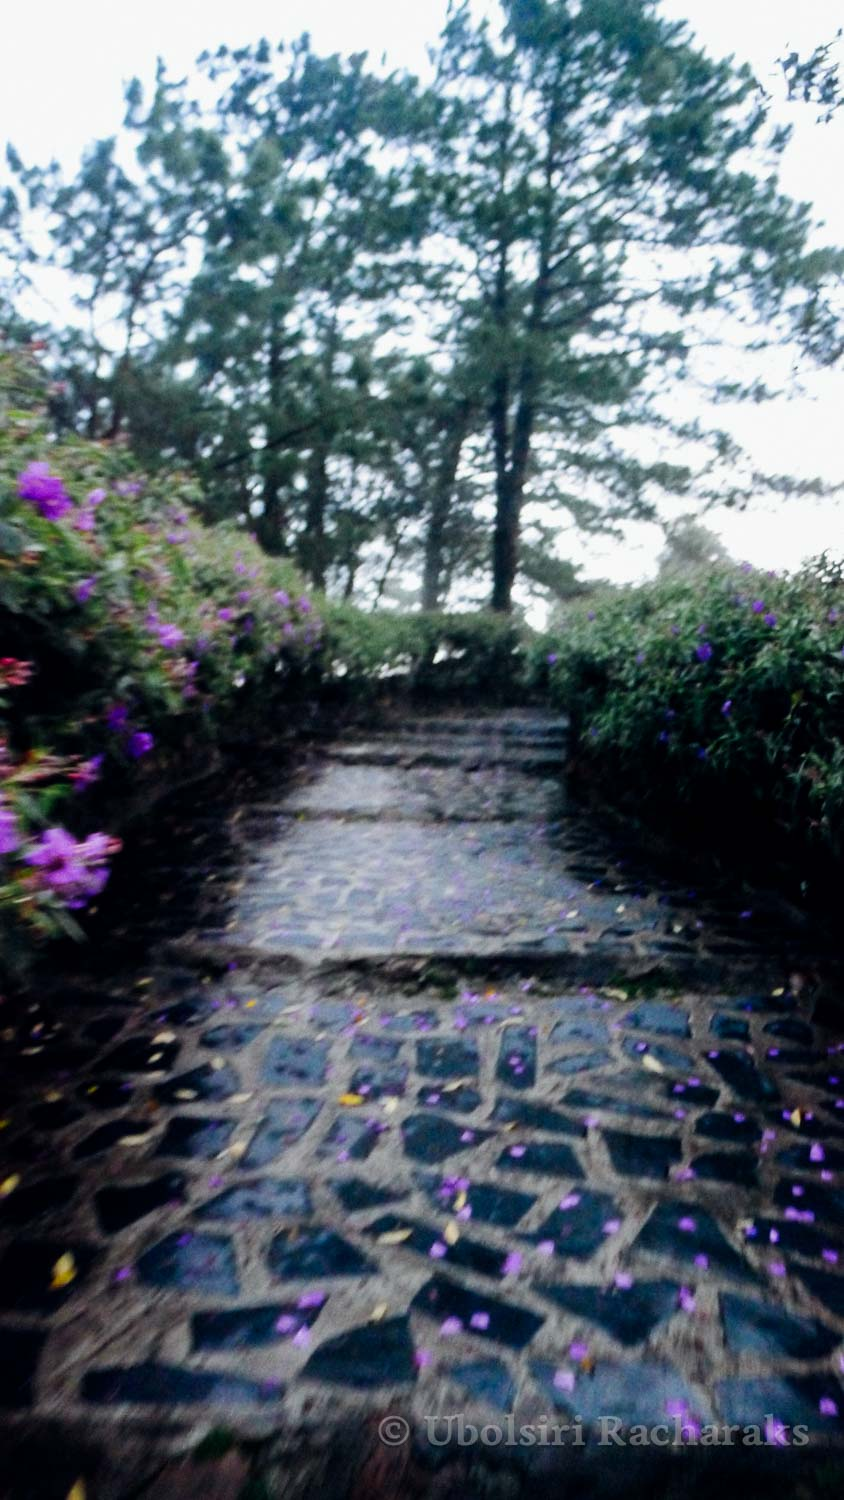 Blurry Wet Stone Pathway with Purple Flowers